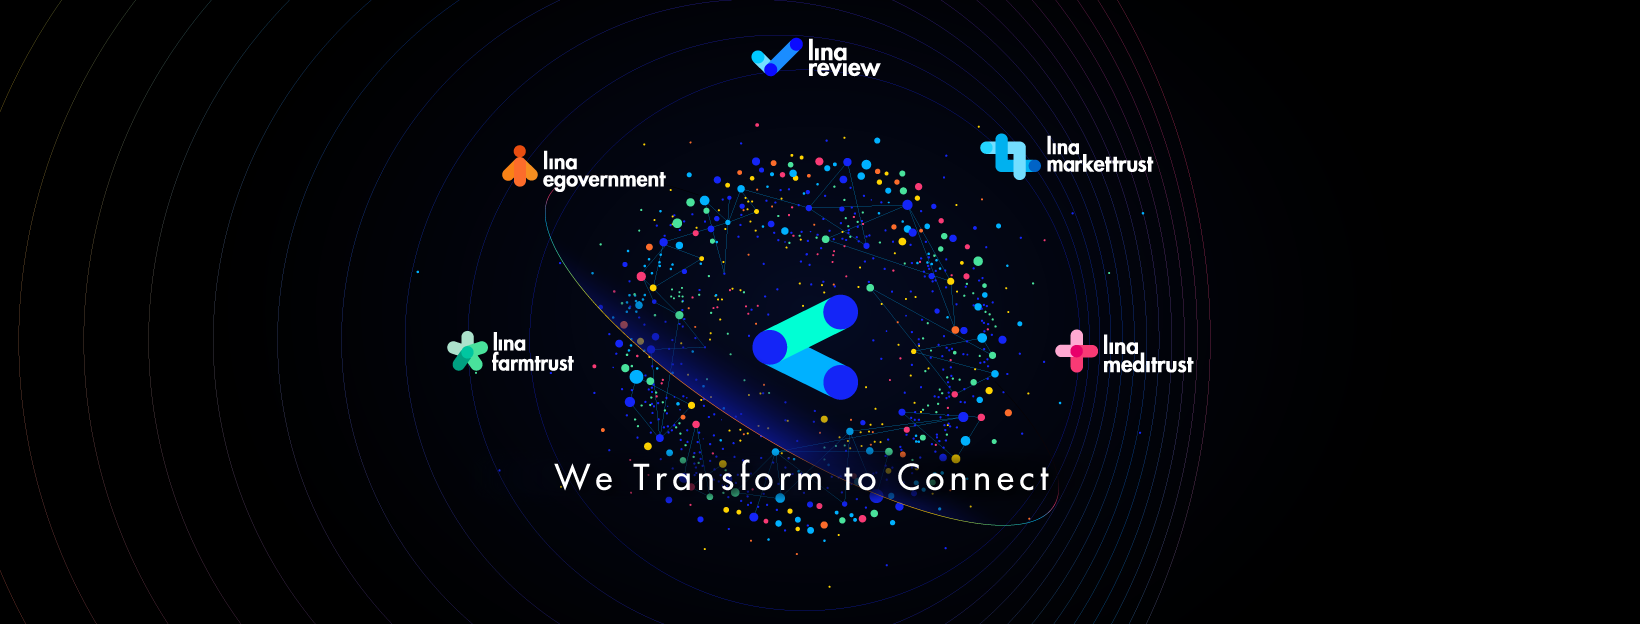 Lina Network officially transform the brand identity